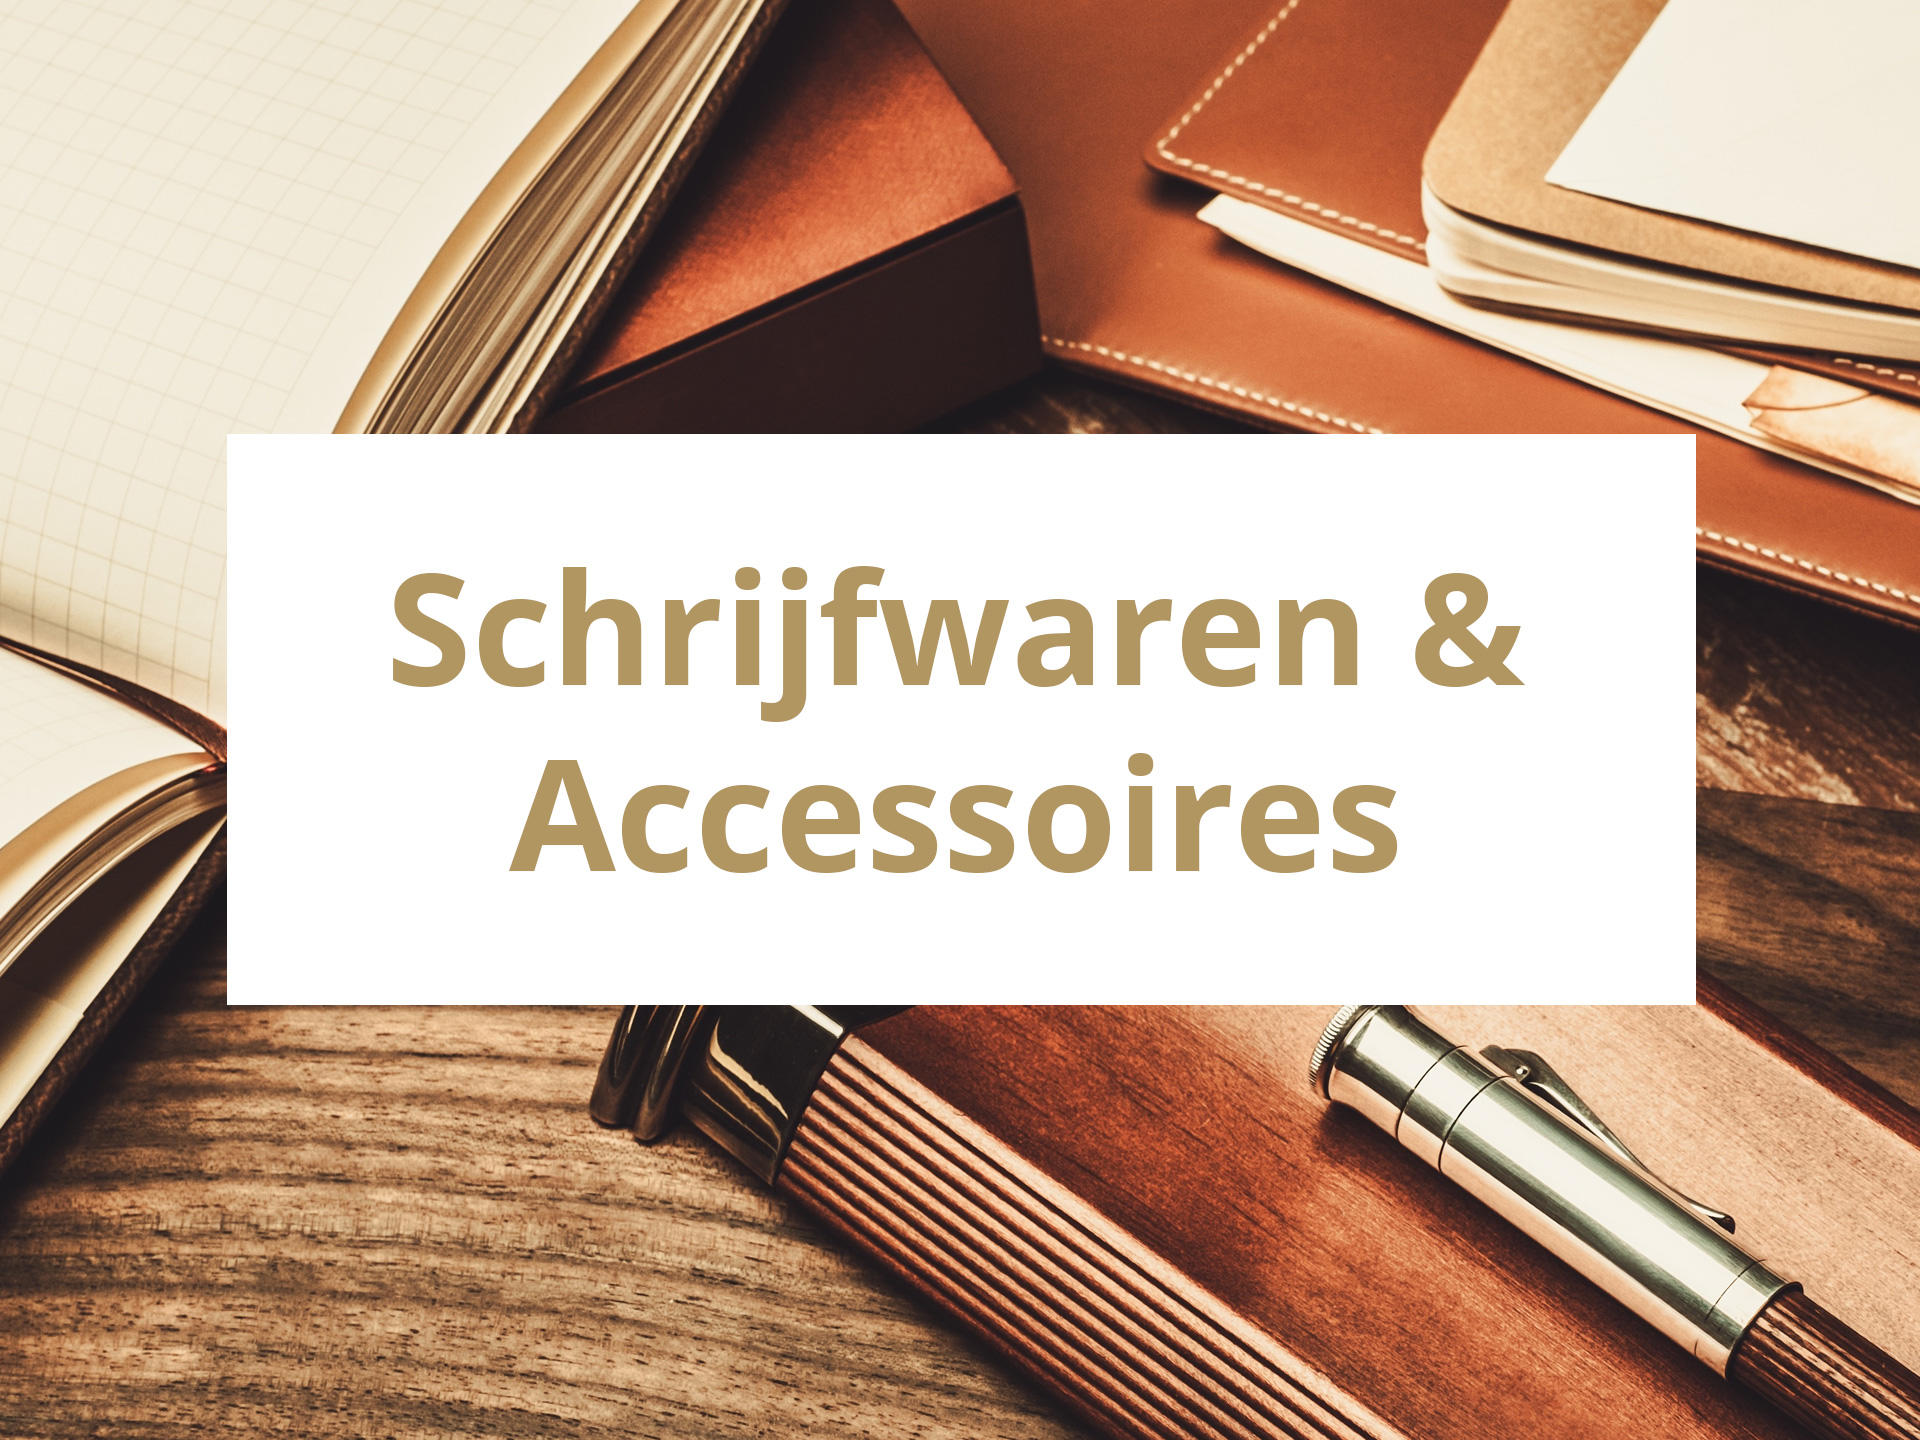 Writing & Accessories